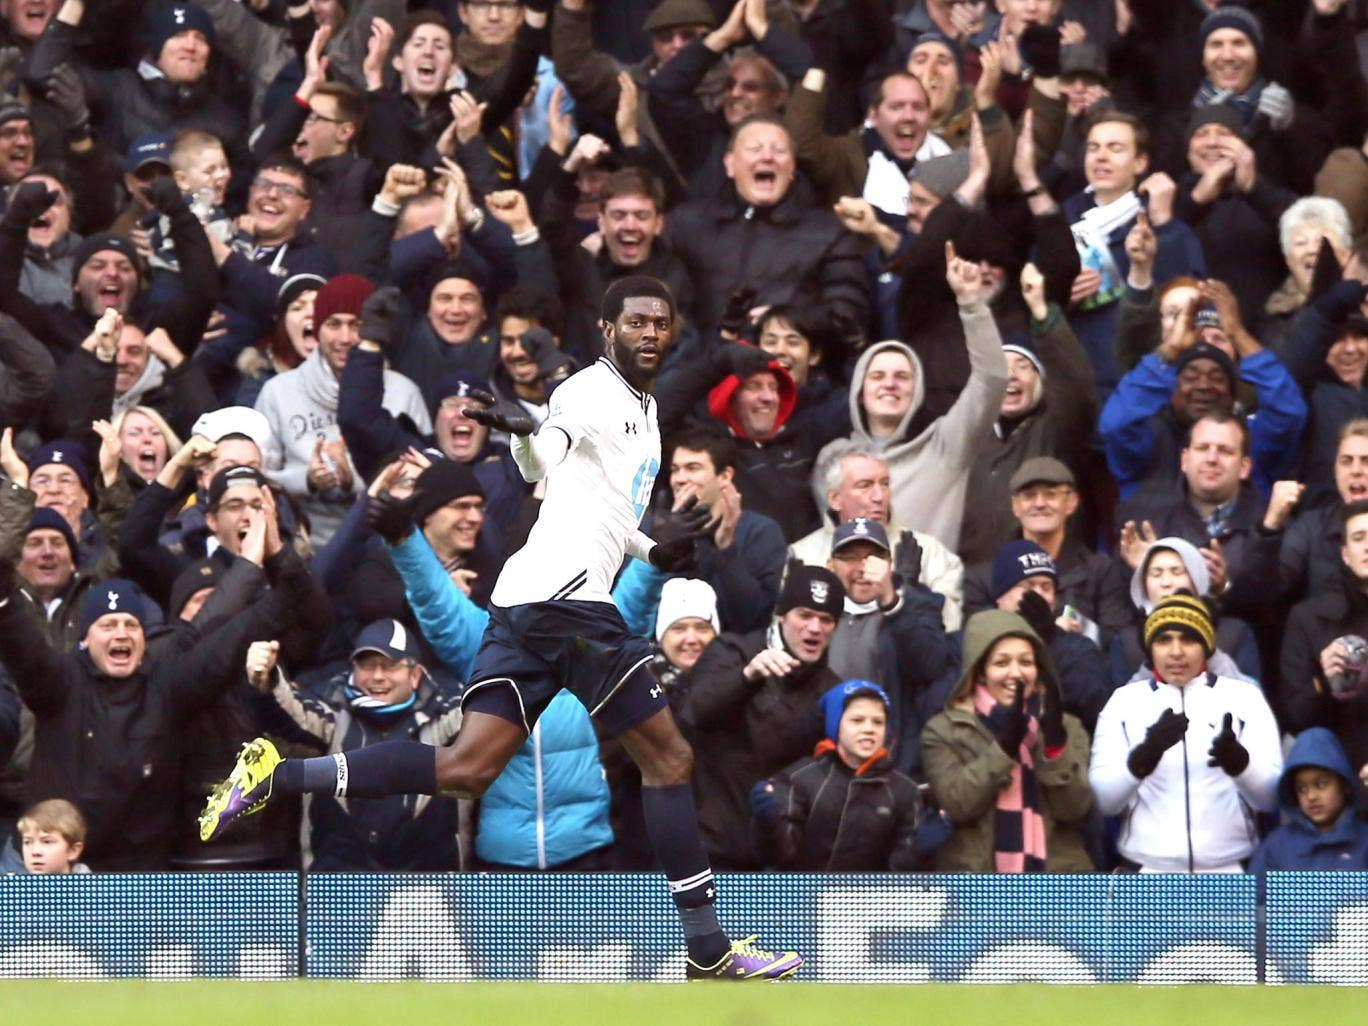 Emmanuel Adebayor has been brought back into the fold at Tottenham Hotspur by the new manager Tim Sherwood – and it is paying off